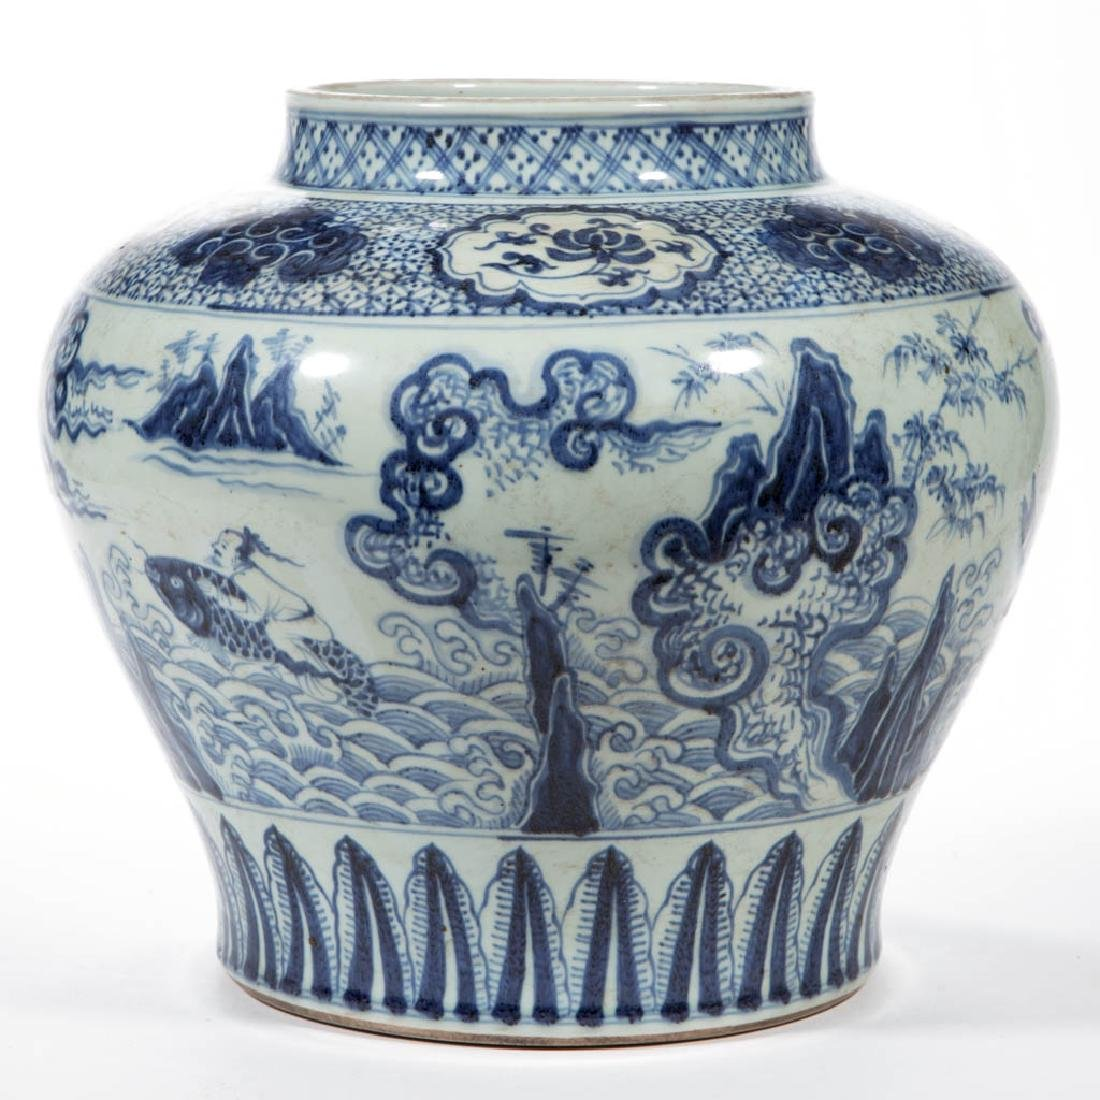 CHINESE EXPORT QING-STYLE PORCELAIN BLUE AND WHITE JAR - 4